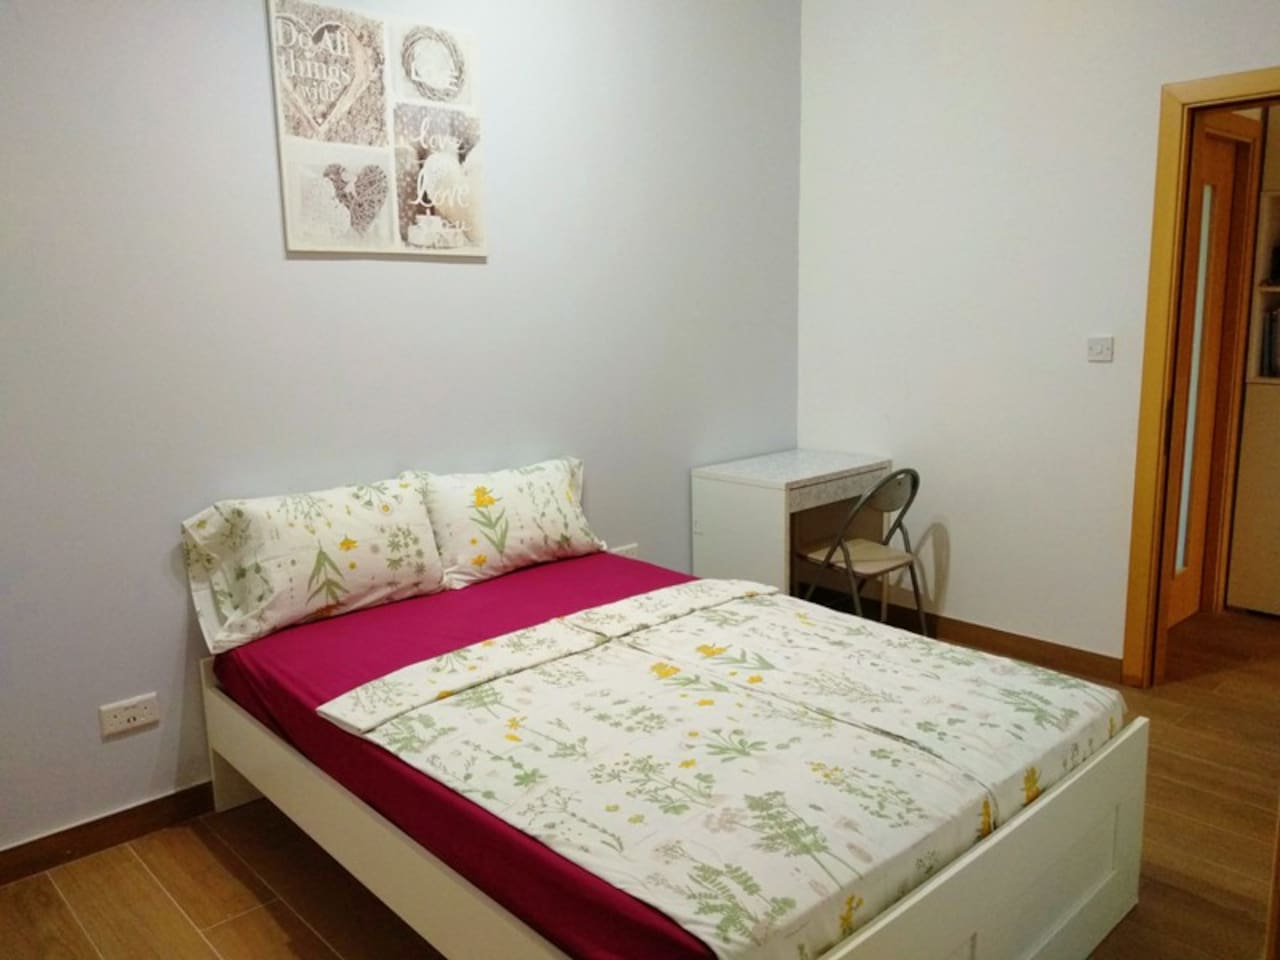 Charming, quiet, bright ensuite double-bedroom with A/C, fast wi-fi and private bathroom The room has lots of natural light. The apartment is located in San Gwann which is a residential area without crazy traffic, 20 minute walk to the beach.